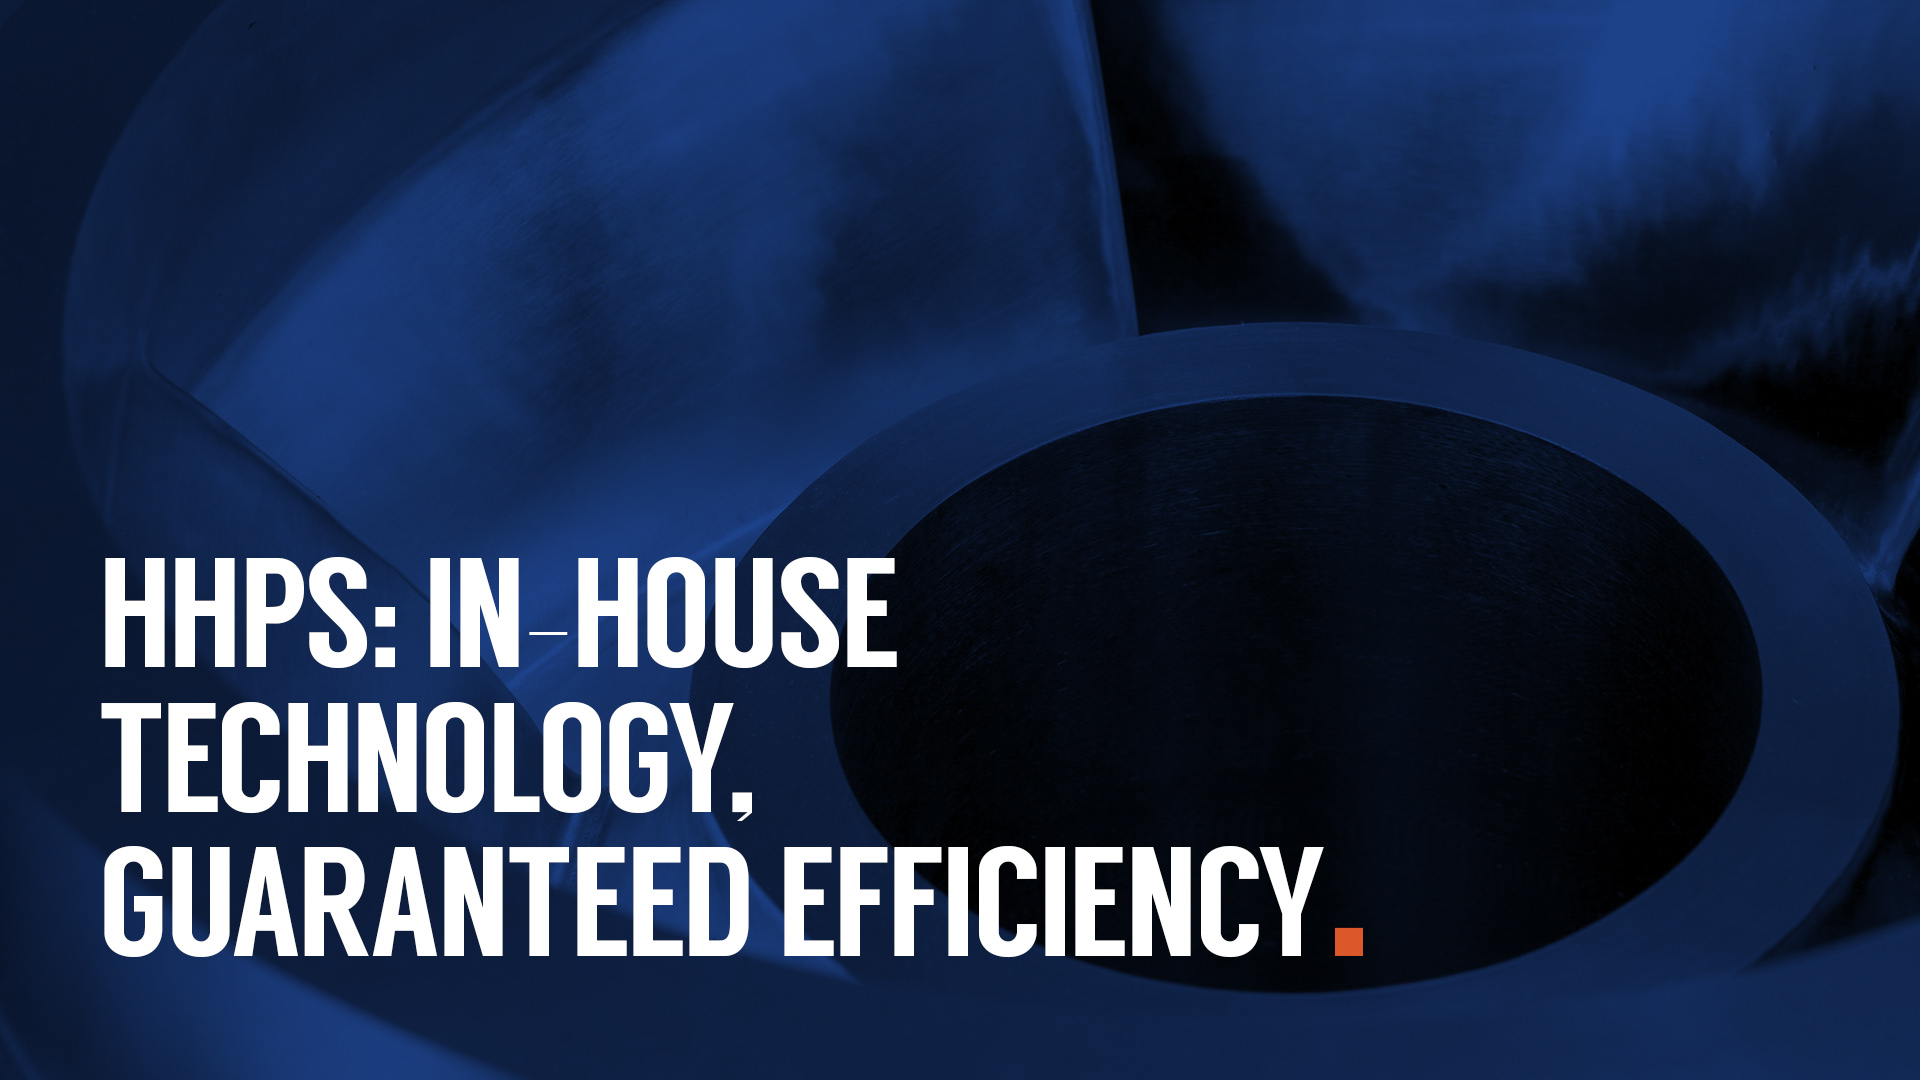 HHPS: In-house technology, guaranteed efficiency